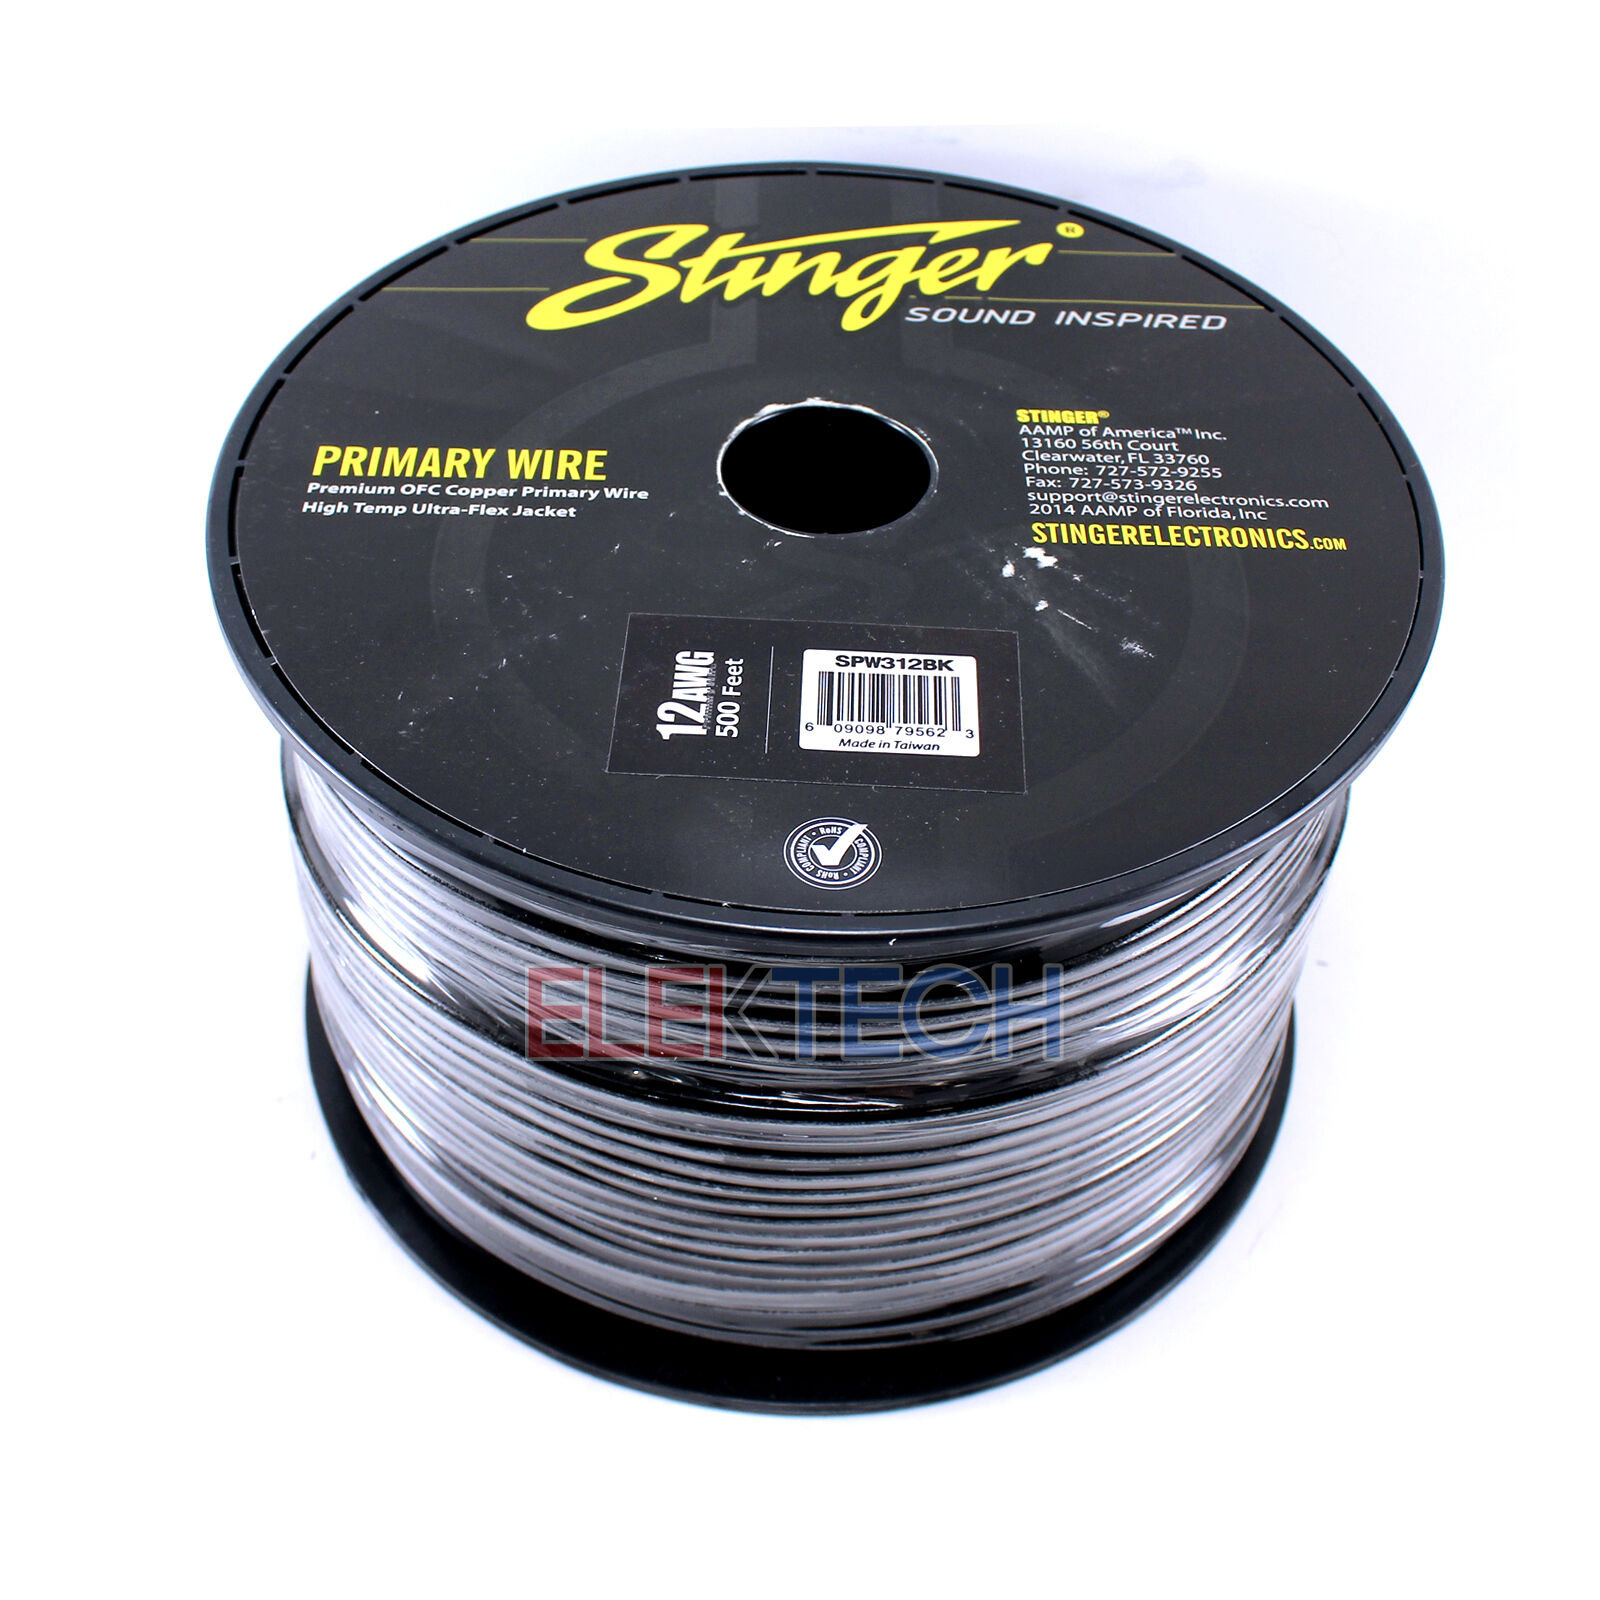 Spw312bk 12 Power Roll Spool Gauge FT Wire 500 Black Audio Cable ...